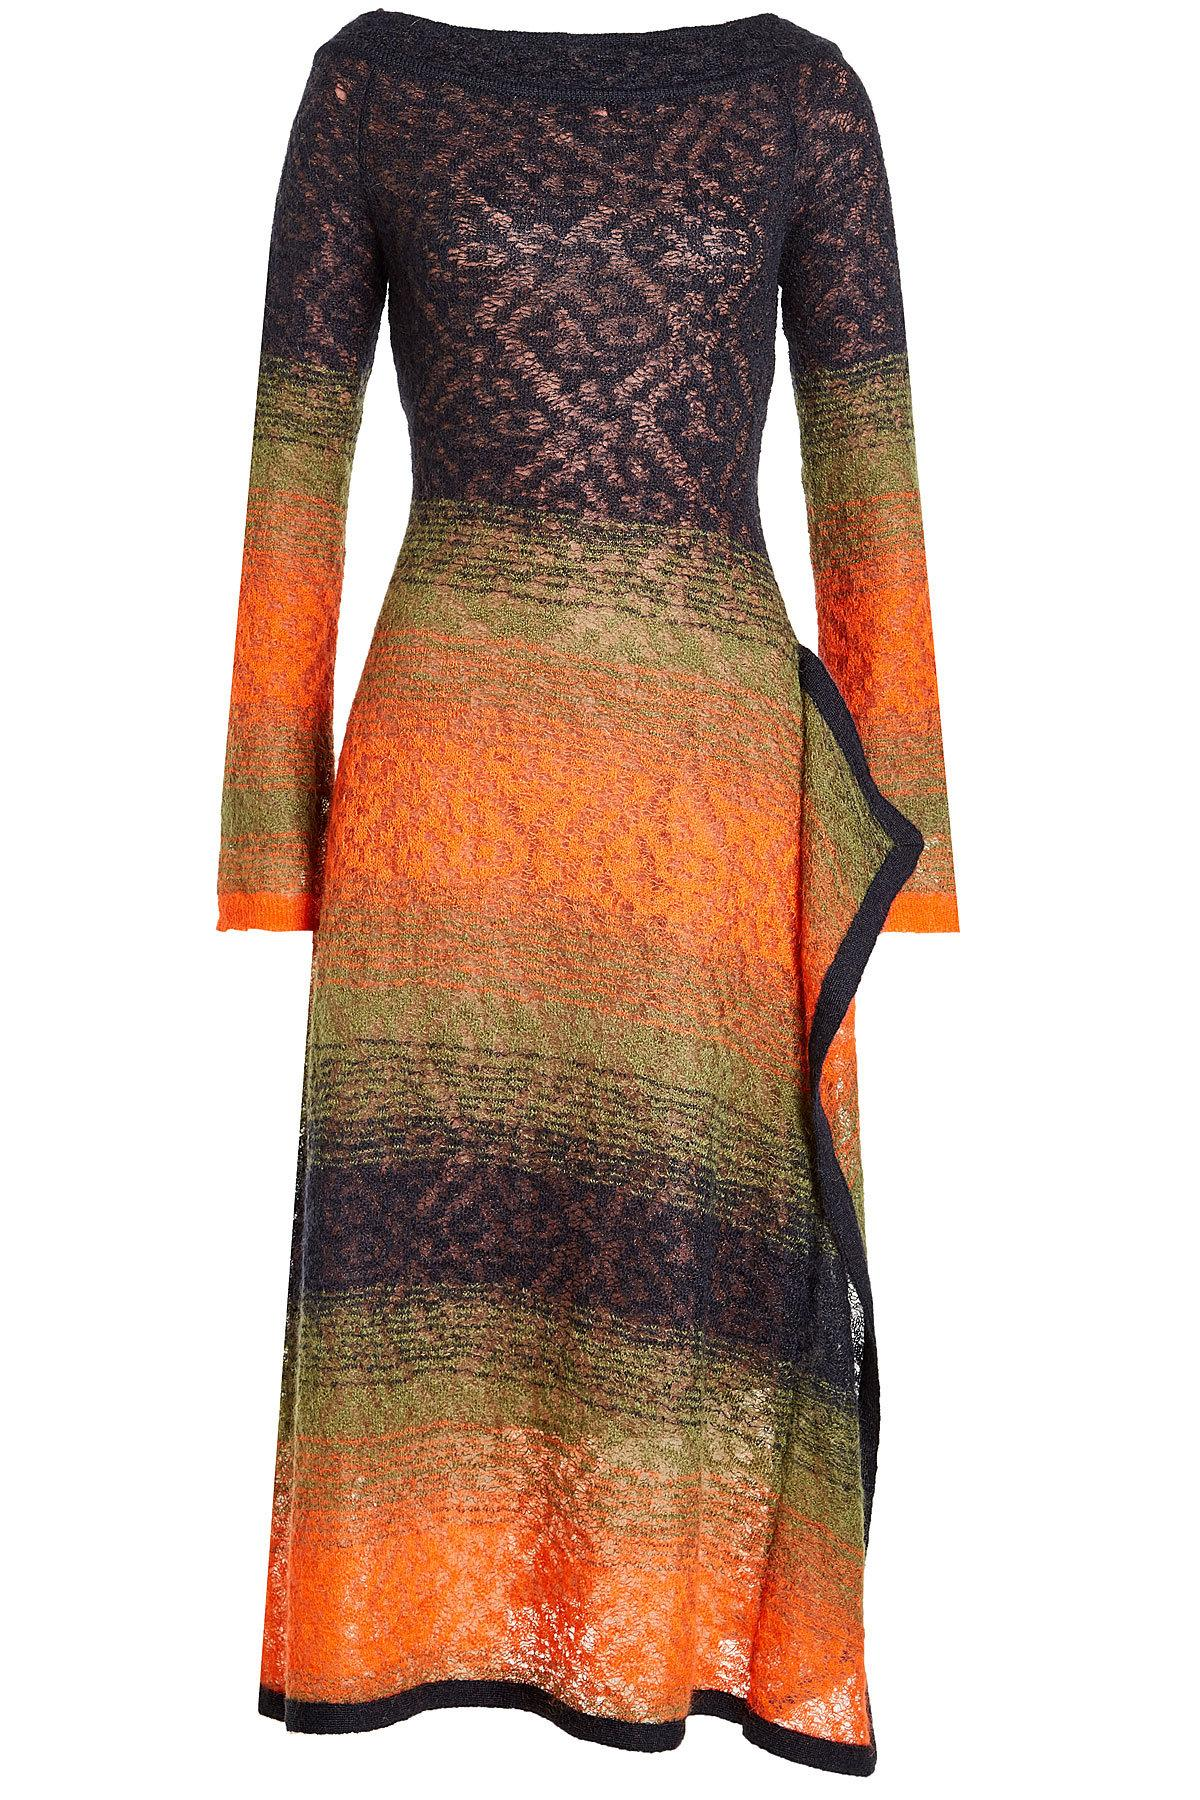 Peter Pilotto Printed Dress With Mohair And Wool In Multicolored